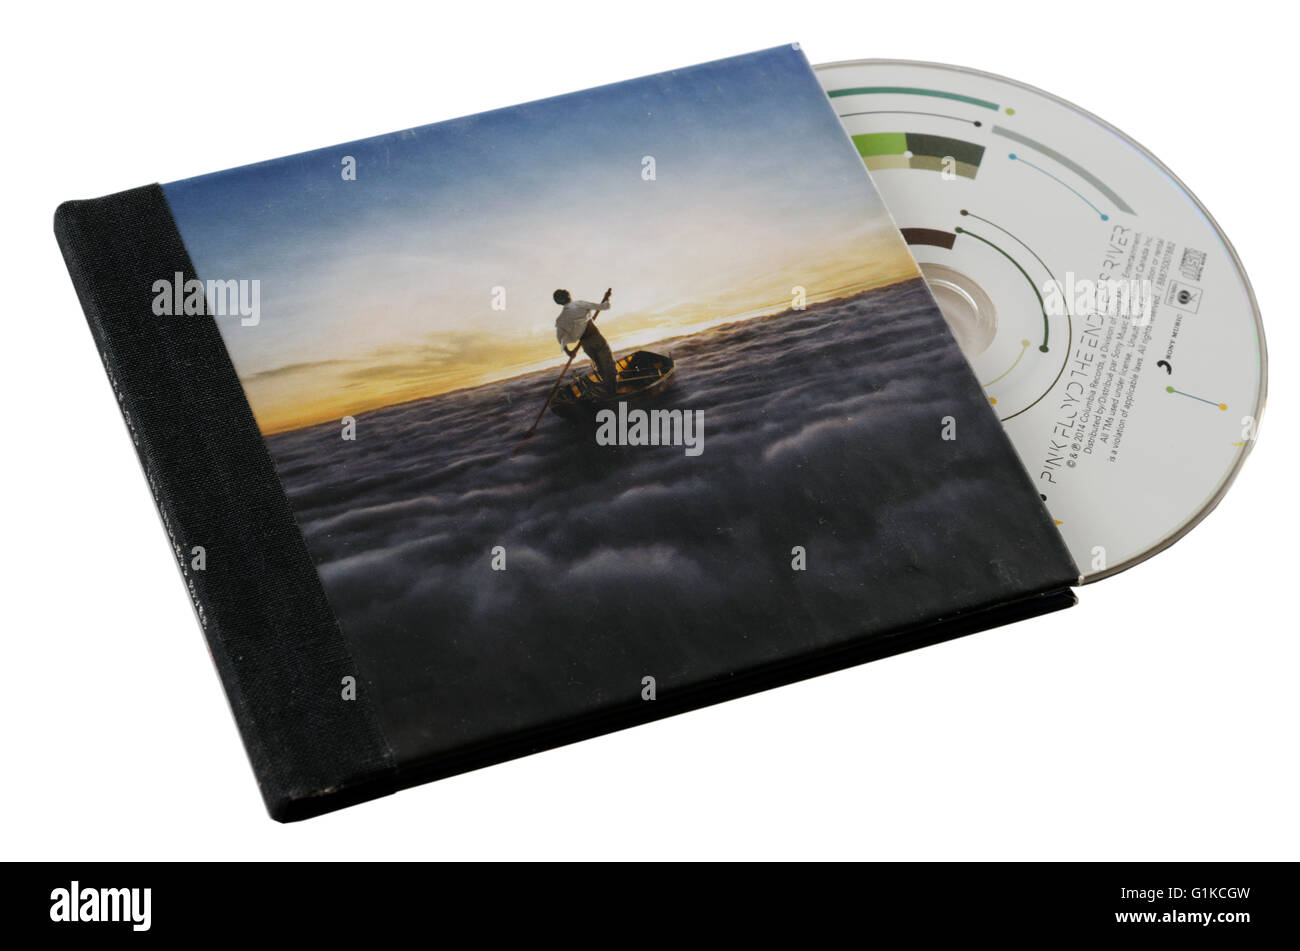 Pink Floyd The Endless River CD - Stock Image